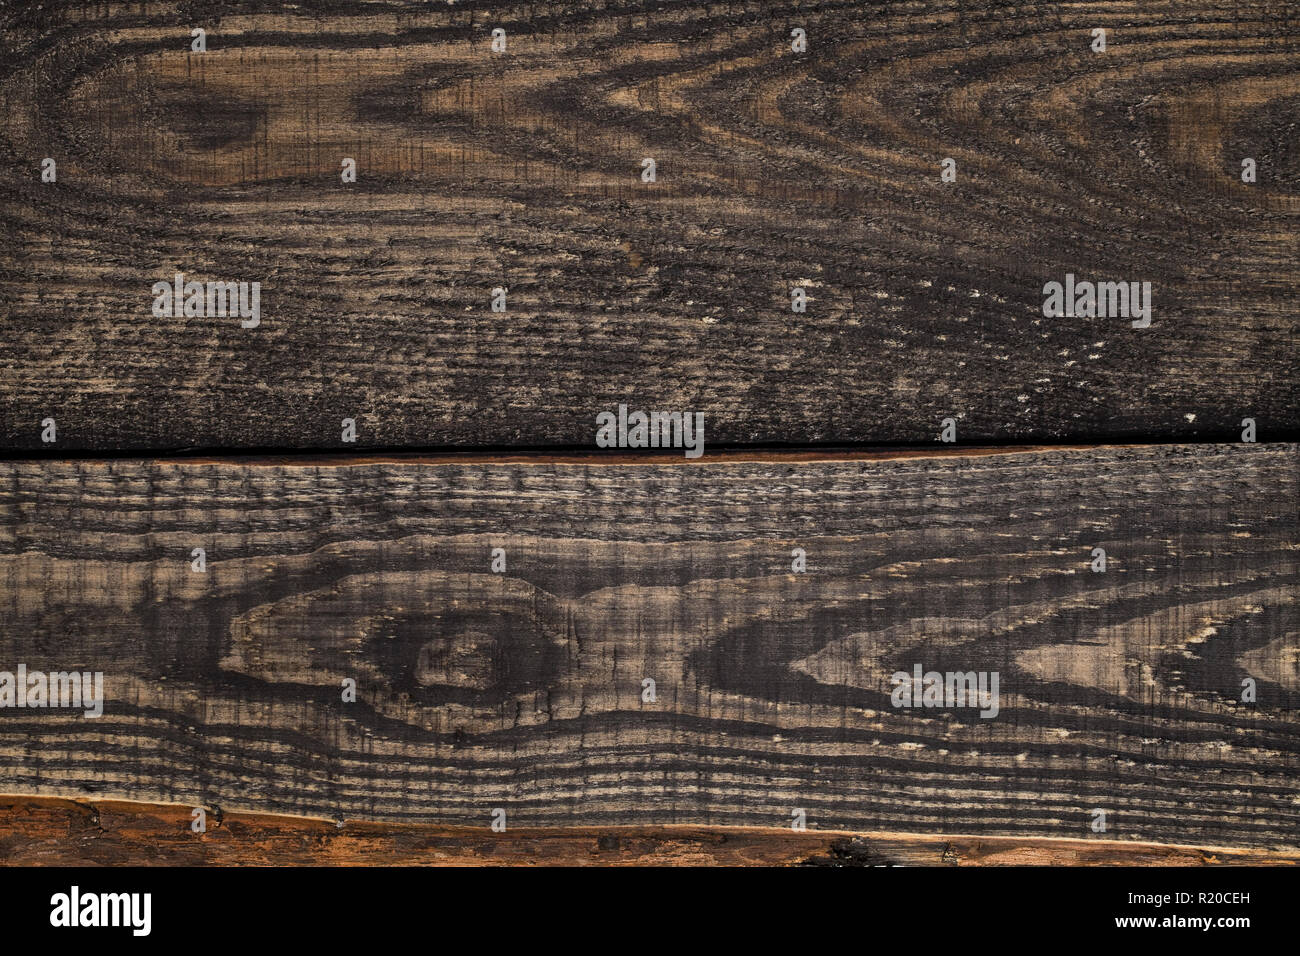 Close Up Of Dark Rustic Wall Made Of Old Wood Table Planks Texture